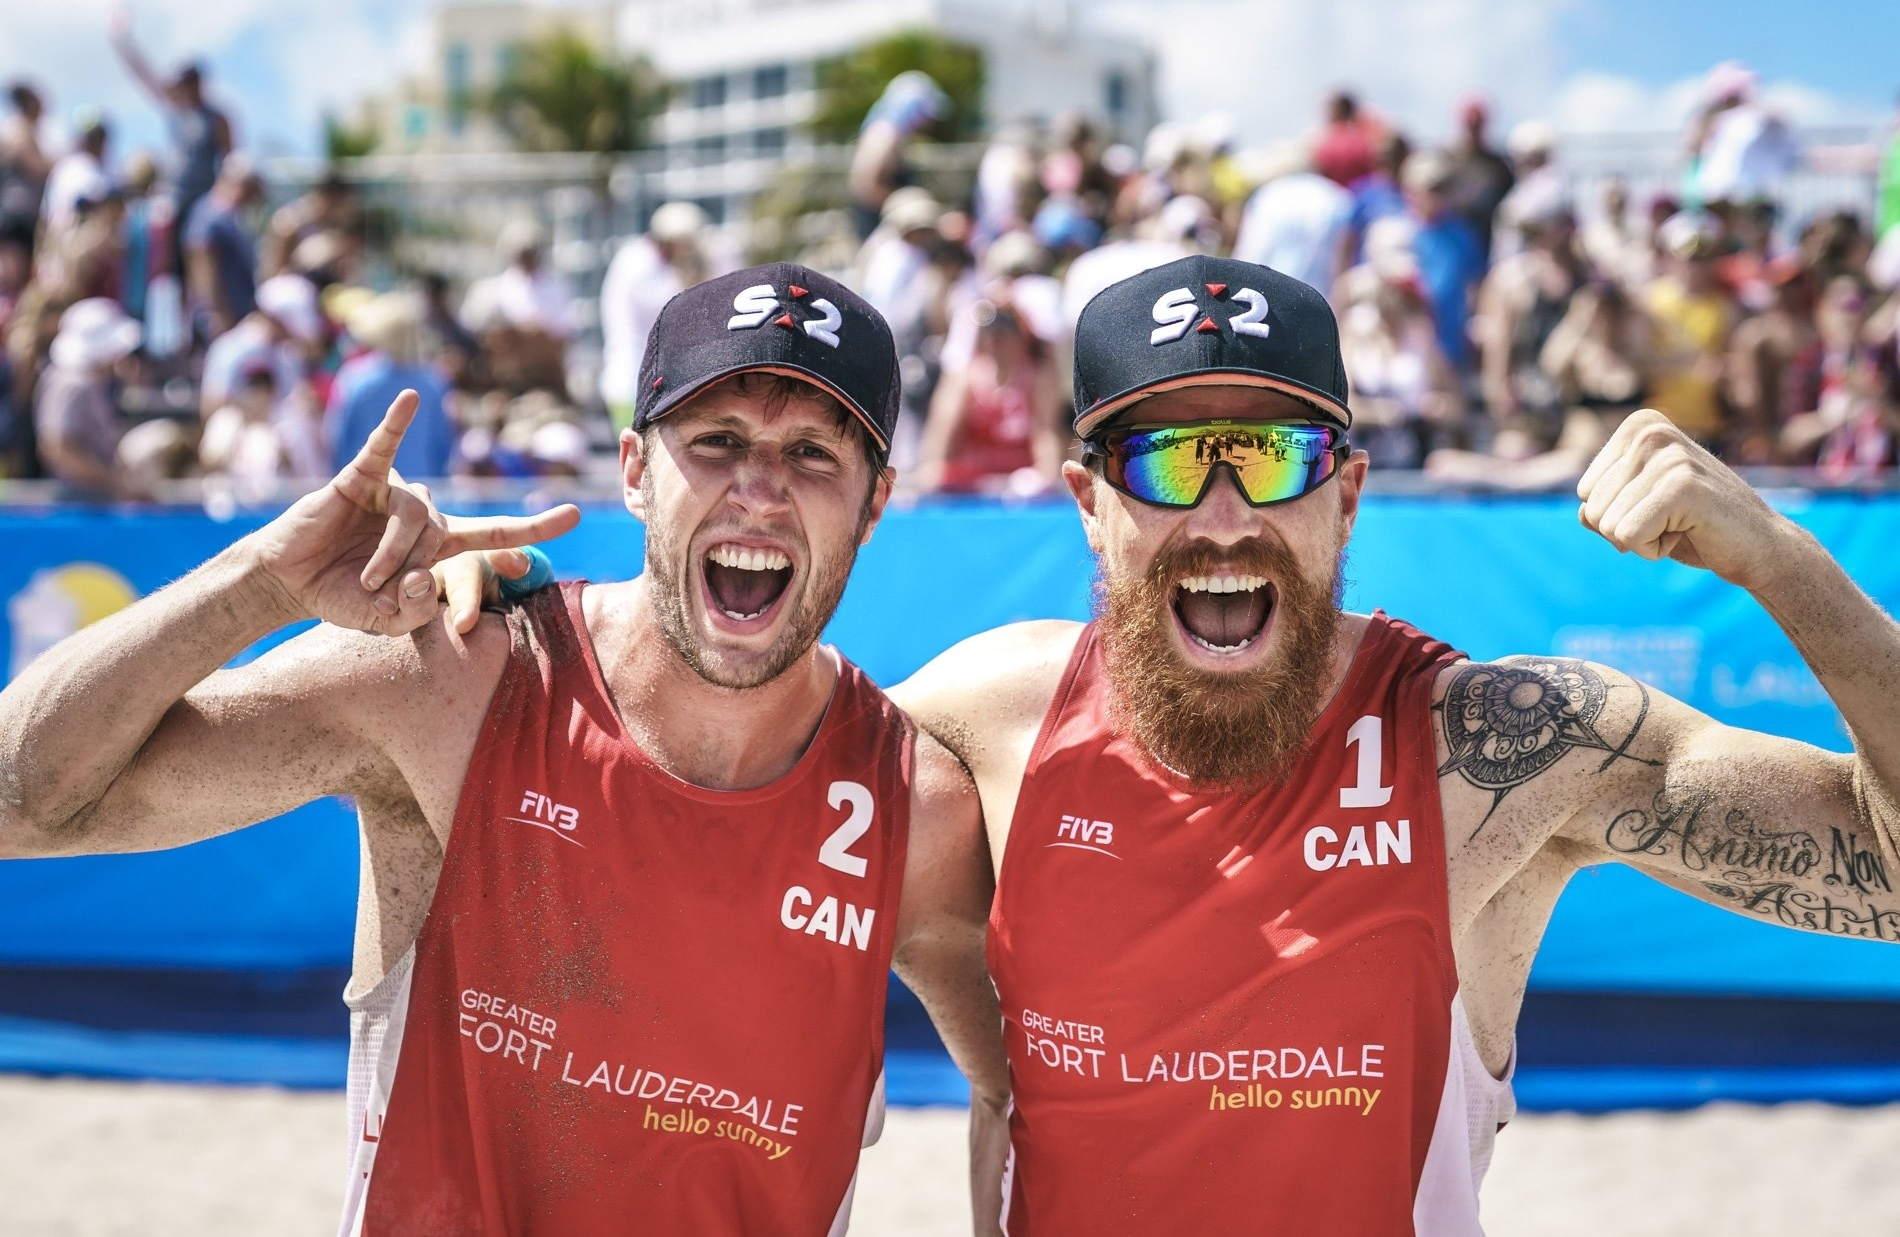 Sams Schachter (left) and Pedlow are flying the flag for Canada at the Commonwealth Games